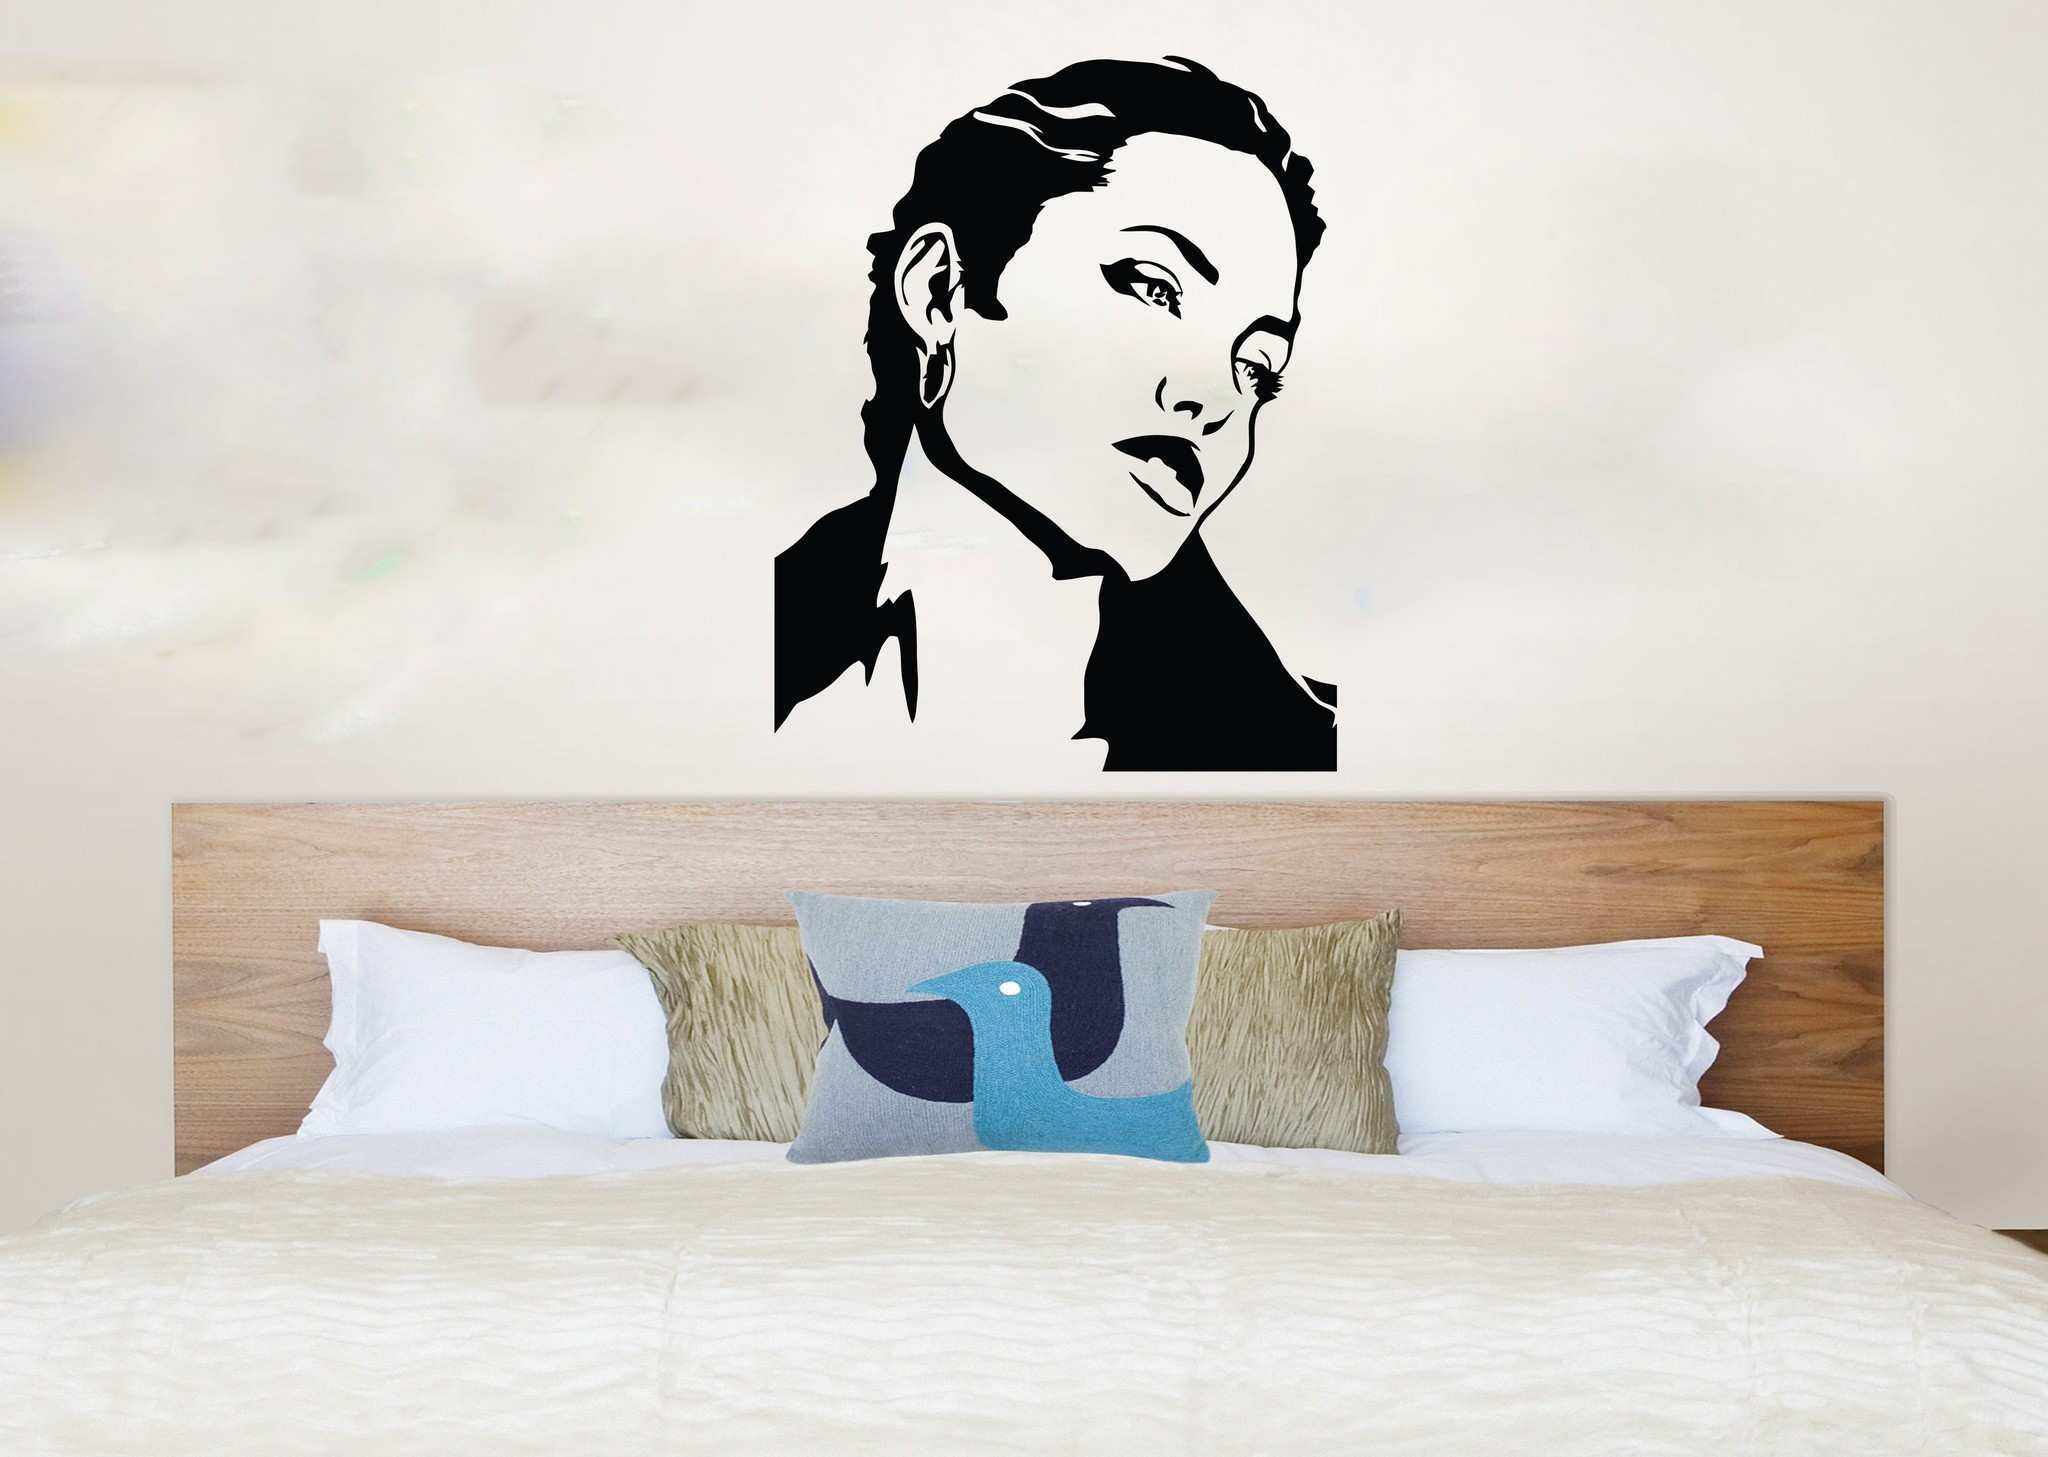 Headboards Headboard Wall Decal Awesome Wall Decals For Bedroom